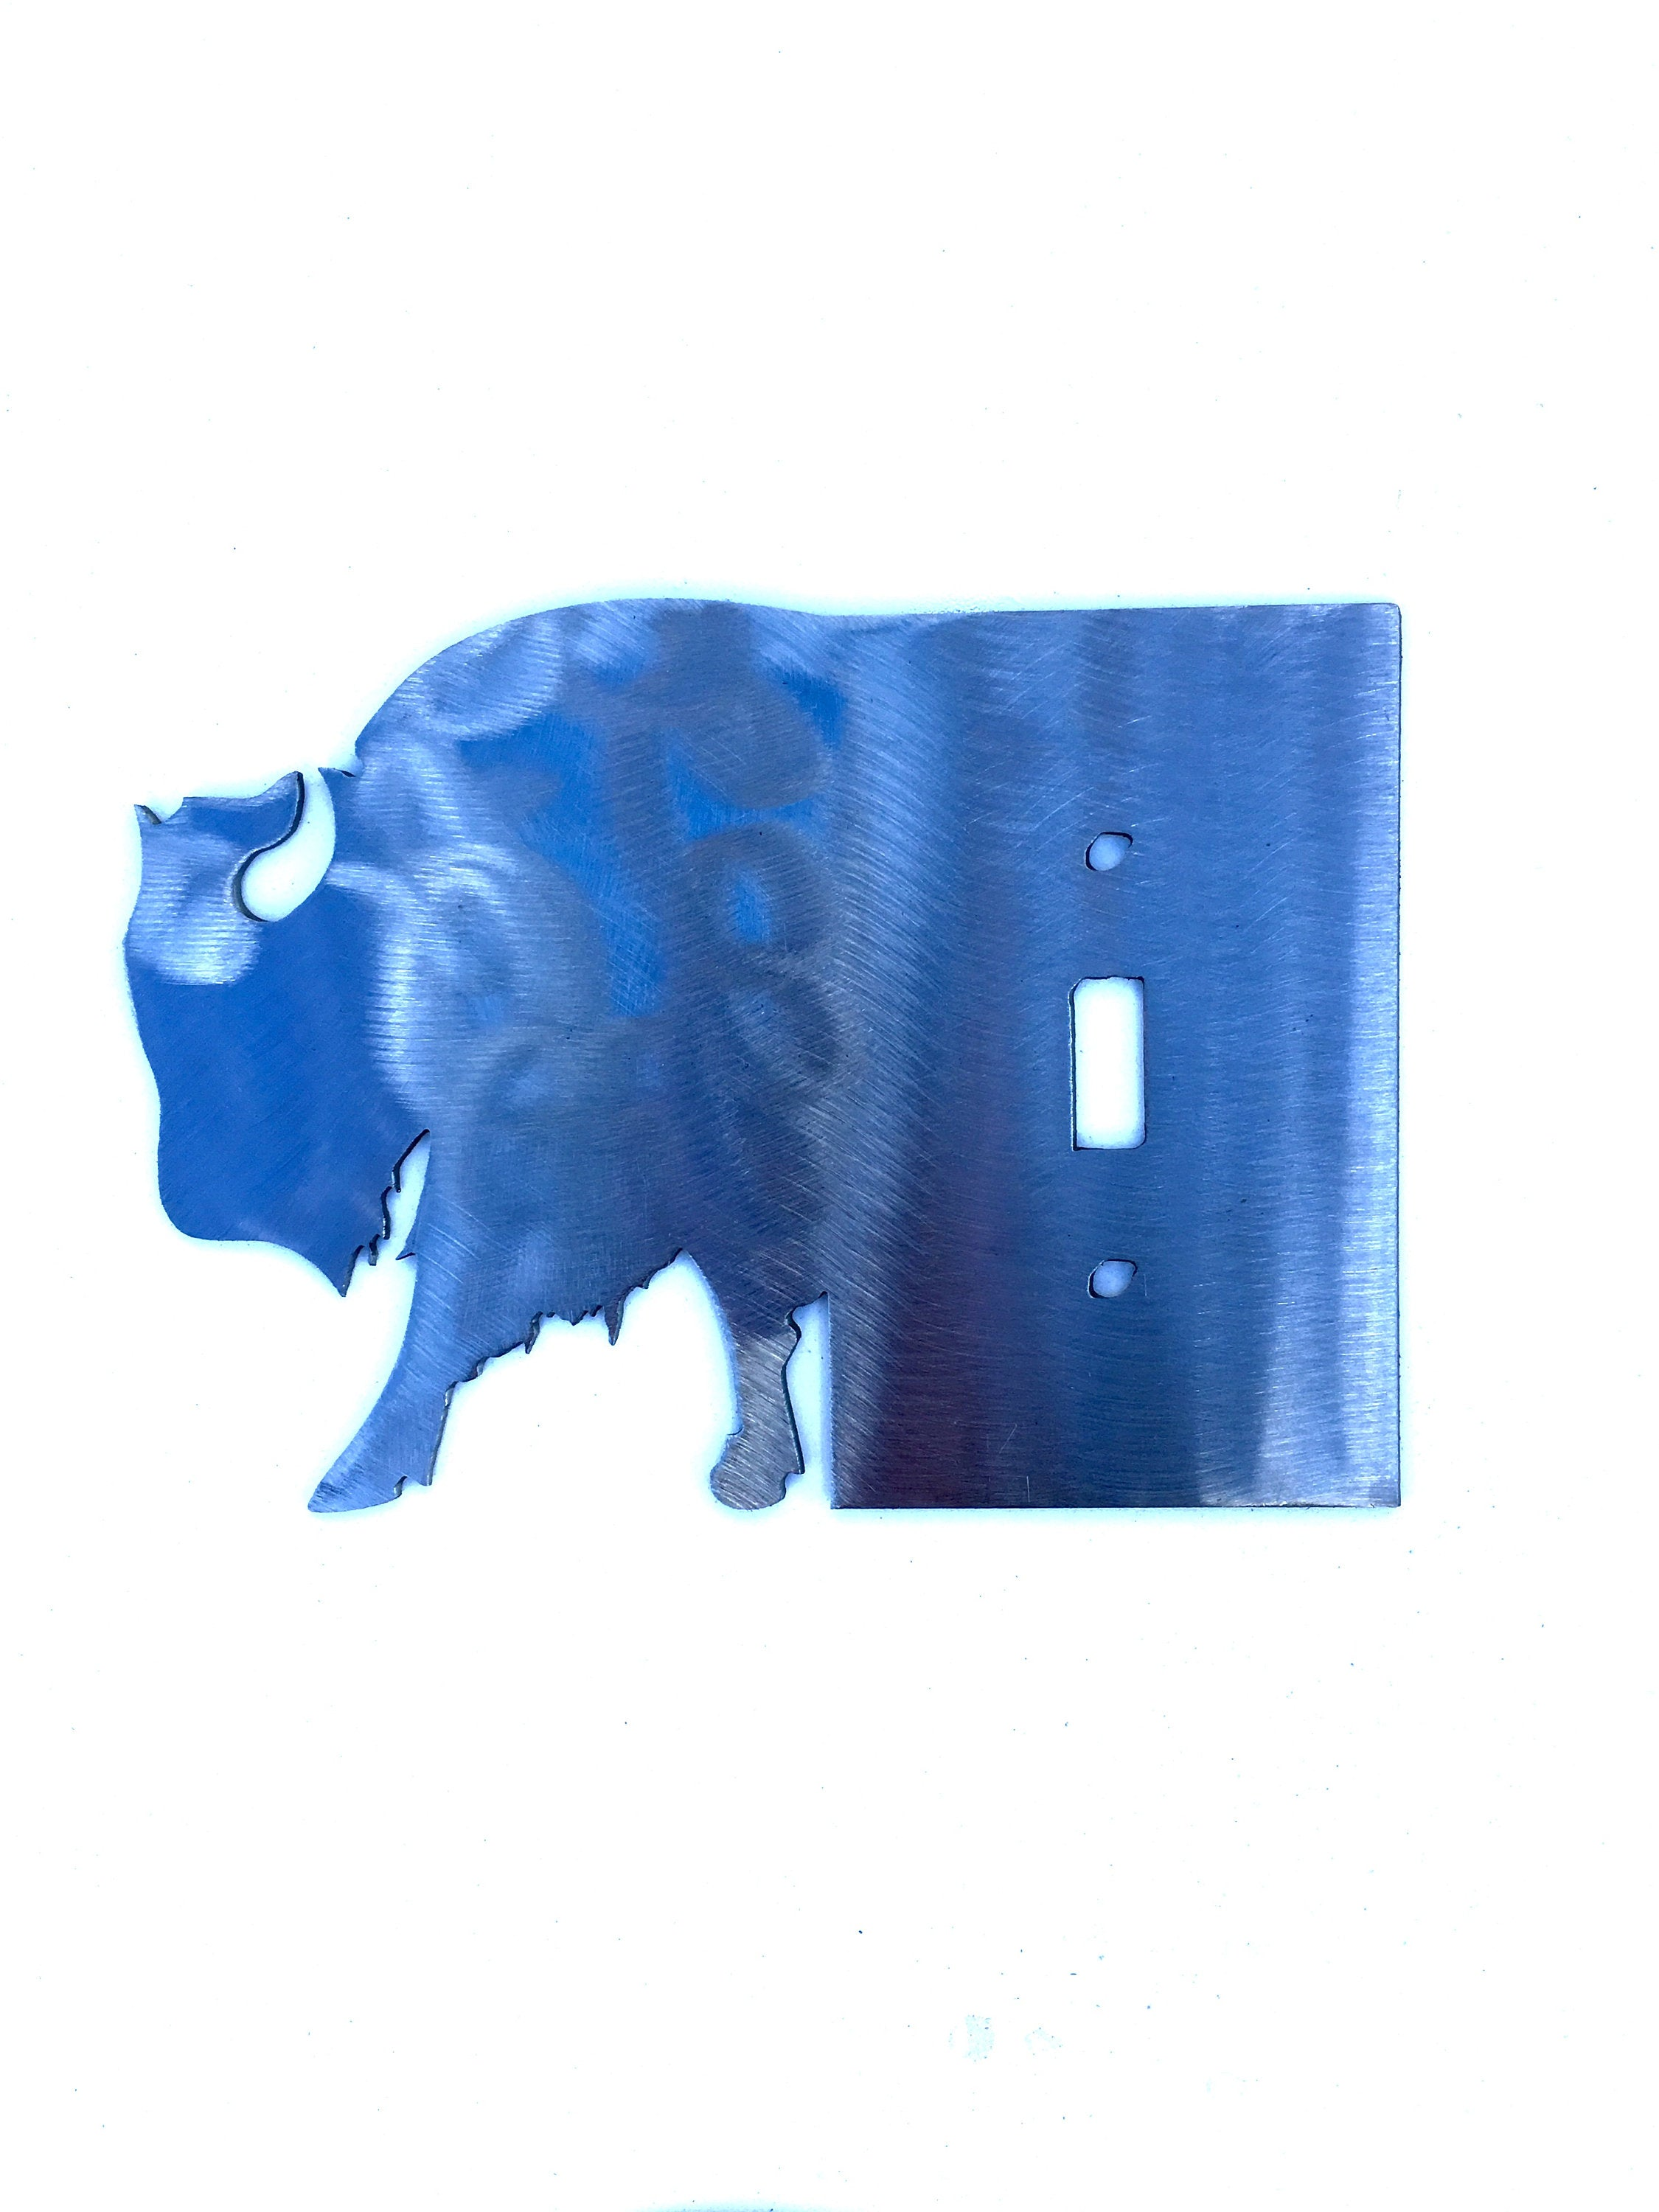 Buffalo Head Metal Switch Plate Cover/Outlet Cover/Rustic Lighting/Decorative Lighting/Unique Art/Rustic Home Decor/Wallplates/Bison decor